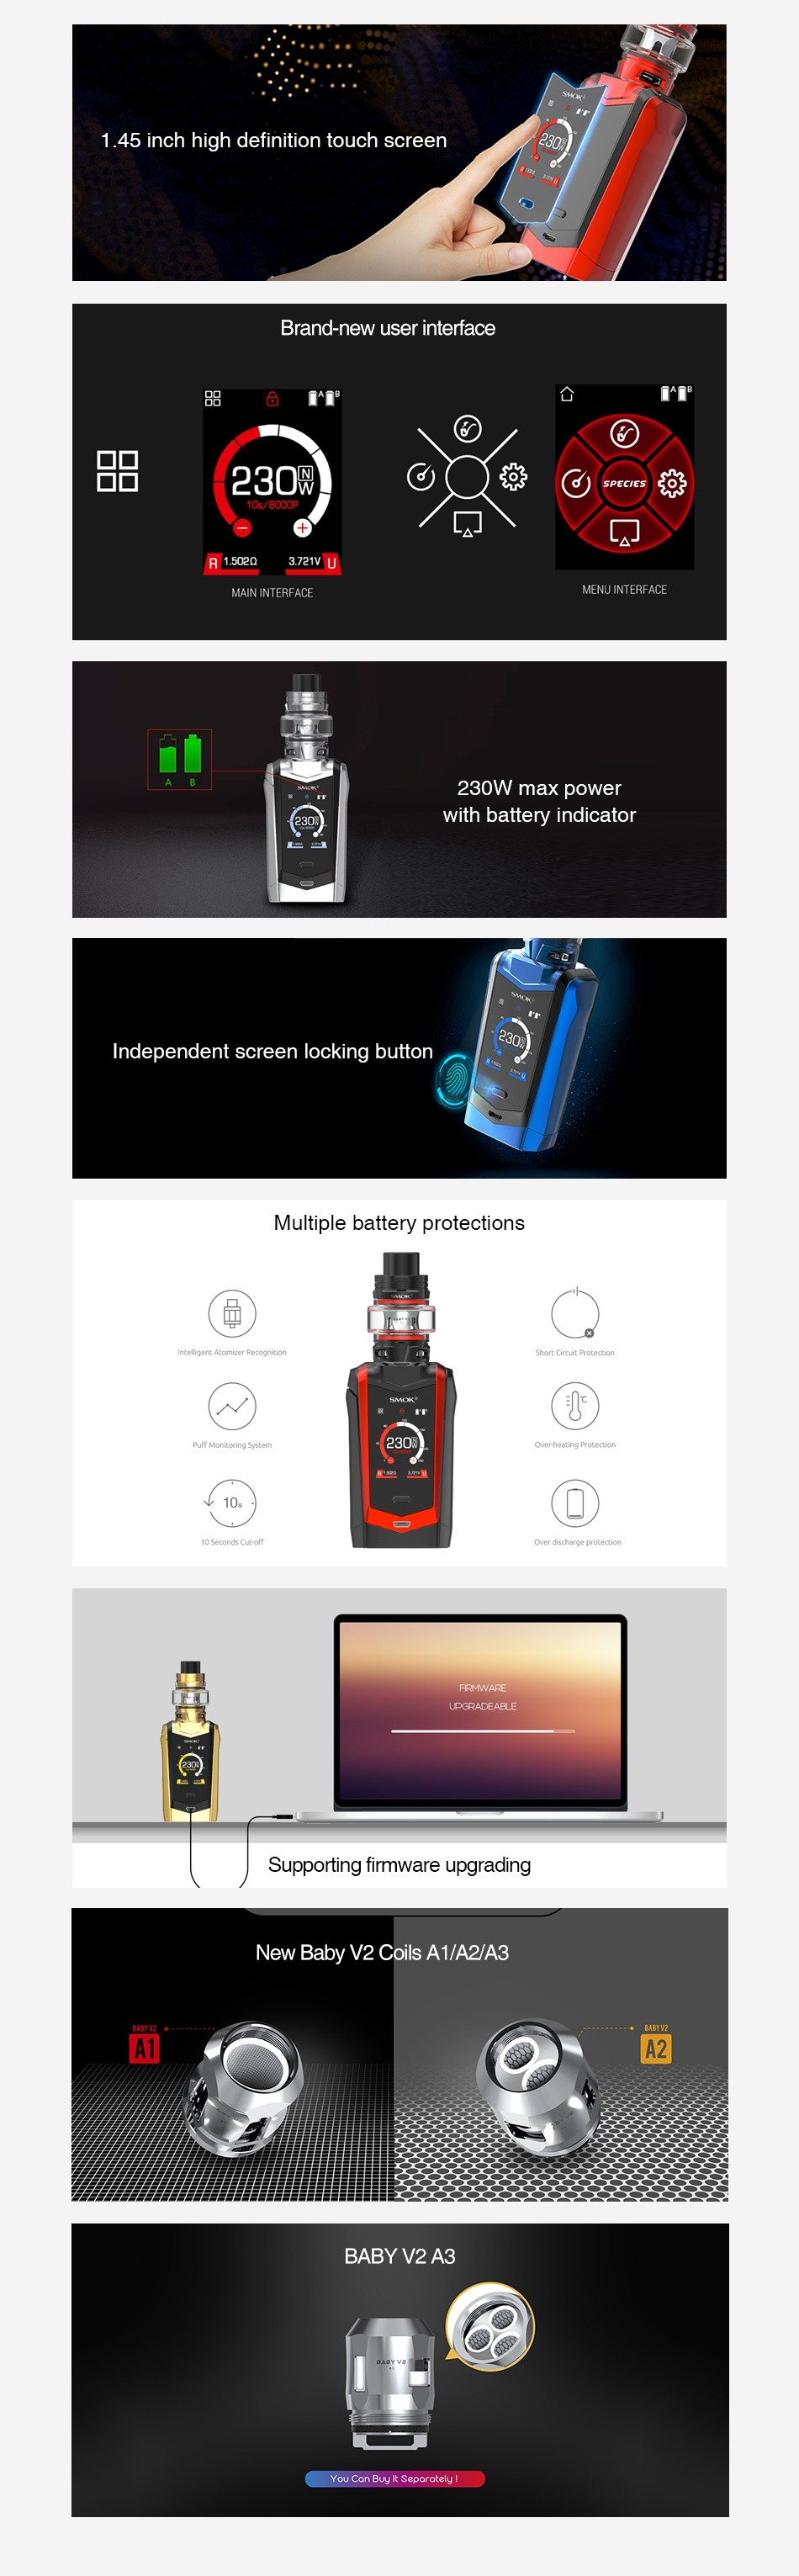 SMOK Species 230W Touch Screen TC Kit with TFV8 Baby V2 1 45 inch high definition touch screen Brandk new user interface     30    R152372U AENU INTERFAC with batto Multiple battery protections Supporting firmware upgrading New Baby v2 Coils A1 A2 A BABY V2 A3